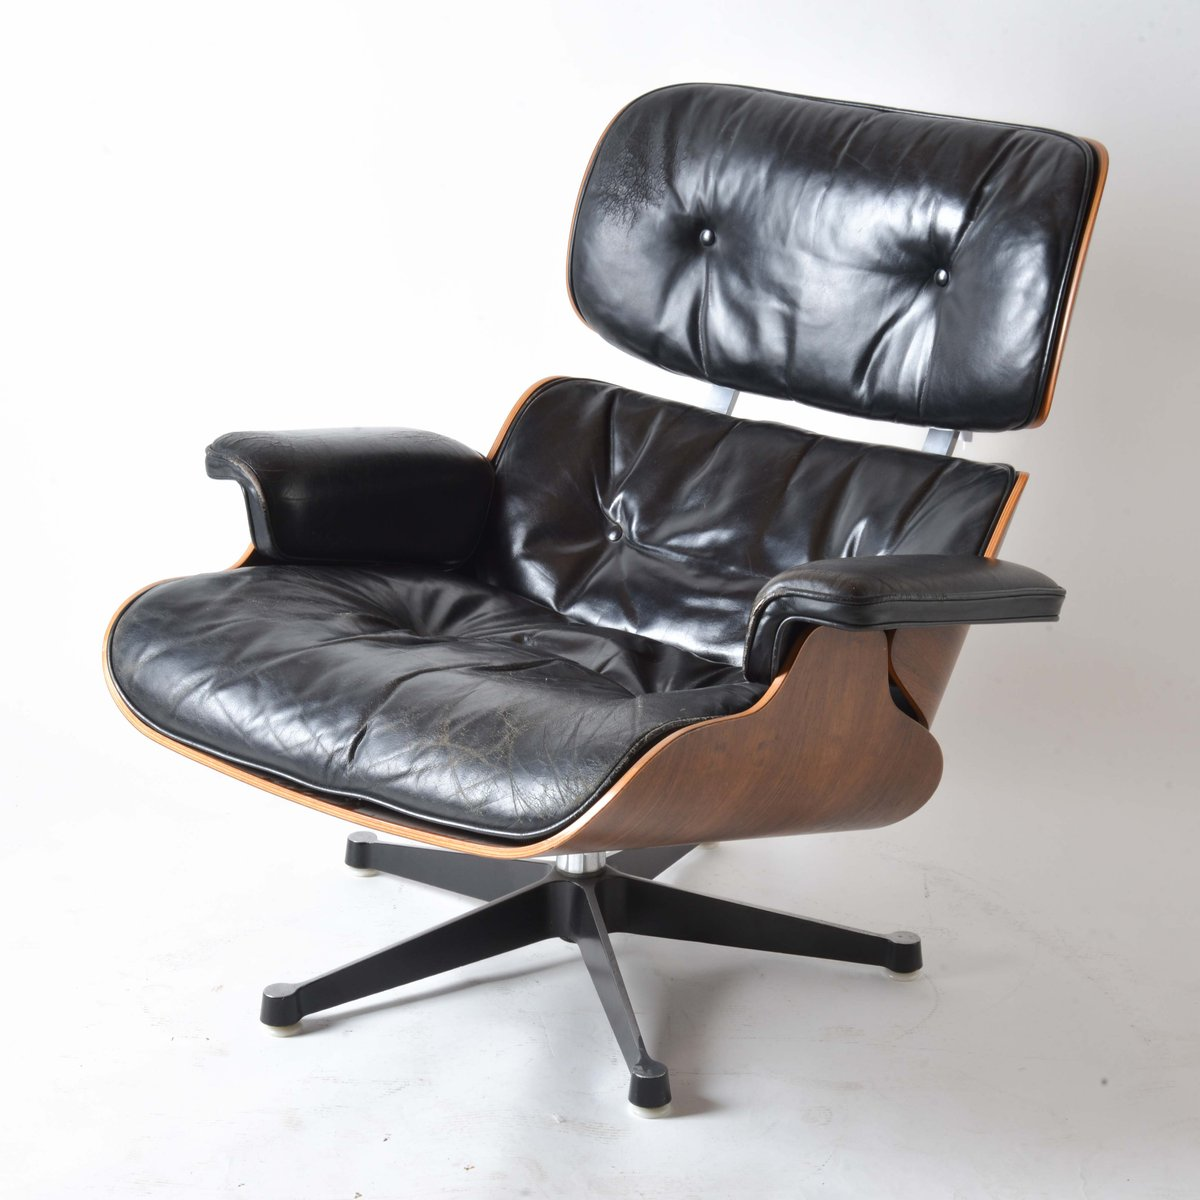 leather lounge chair by charles and ray eames for herman miller  - leather lounge chair by charles and ray eames for herman miller s